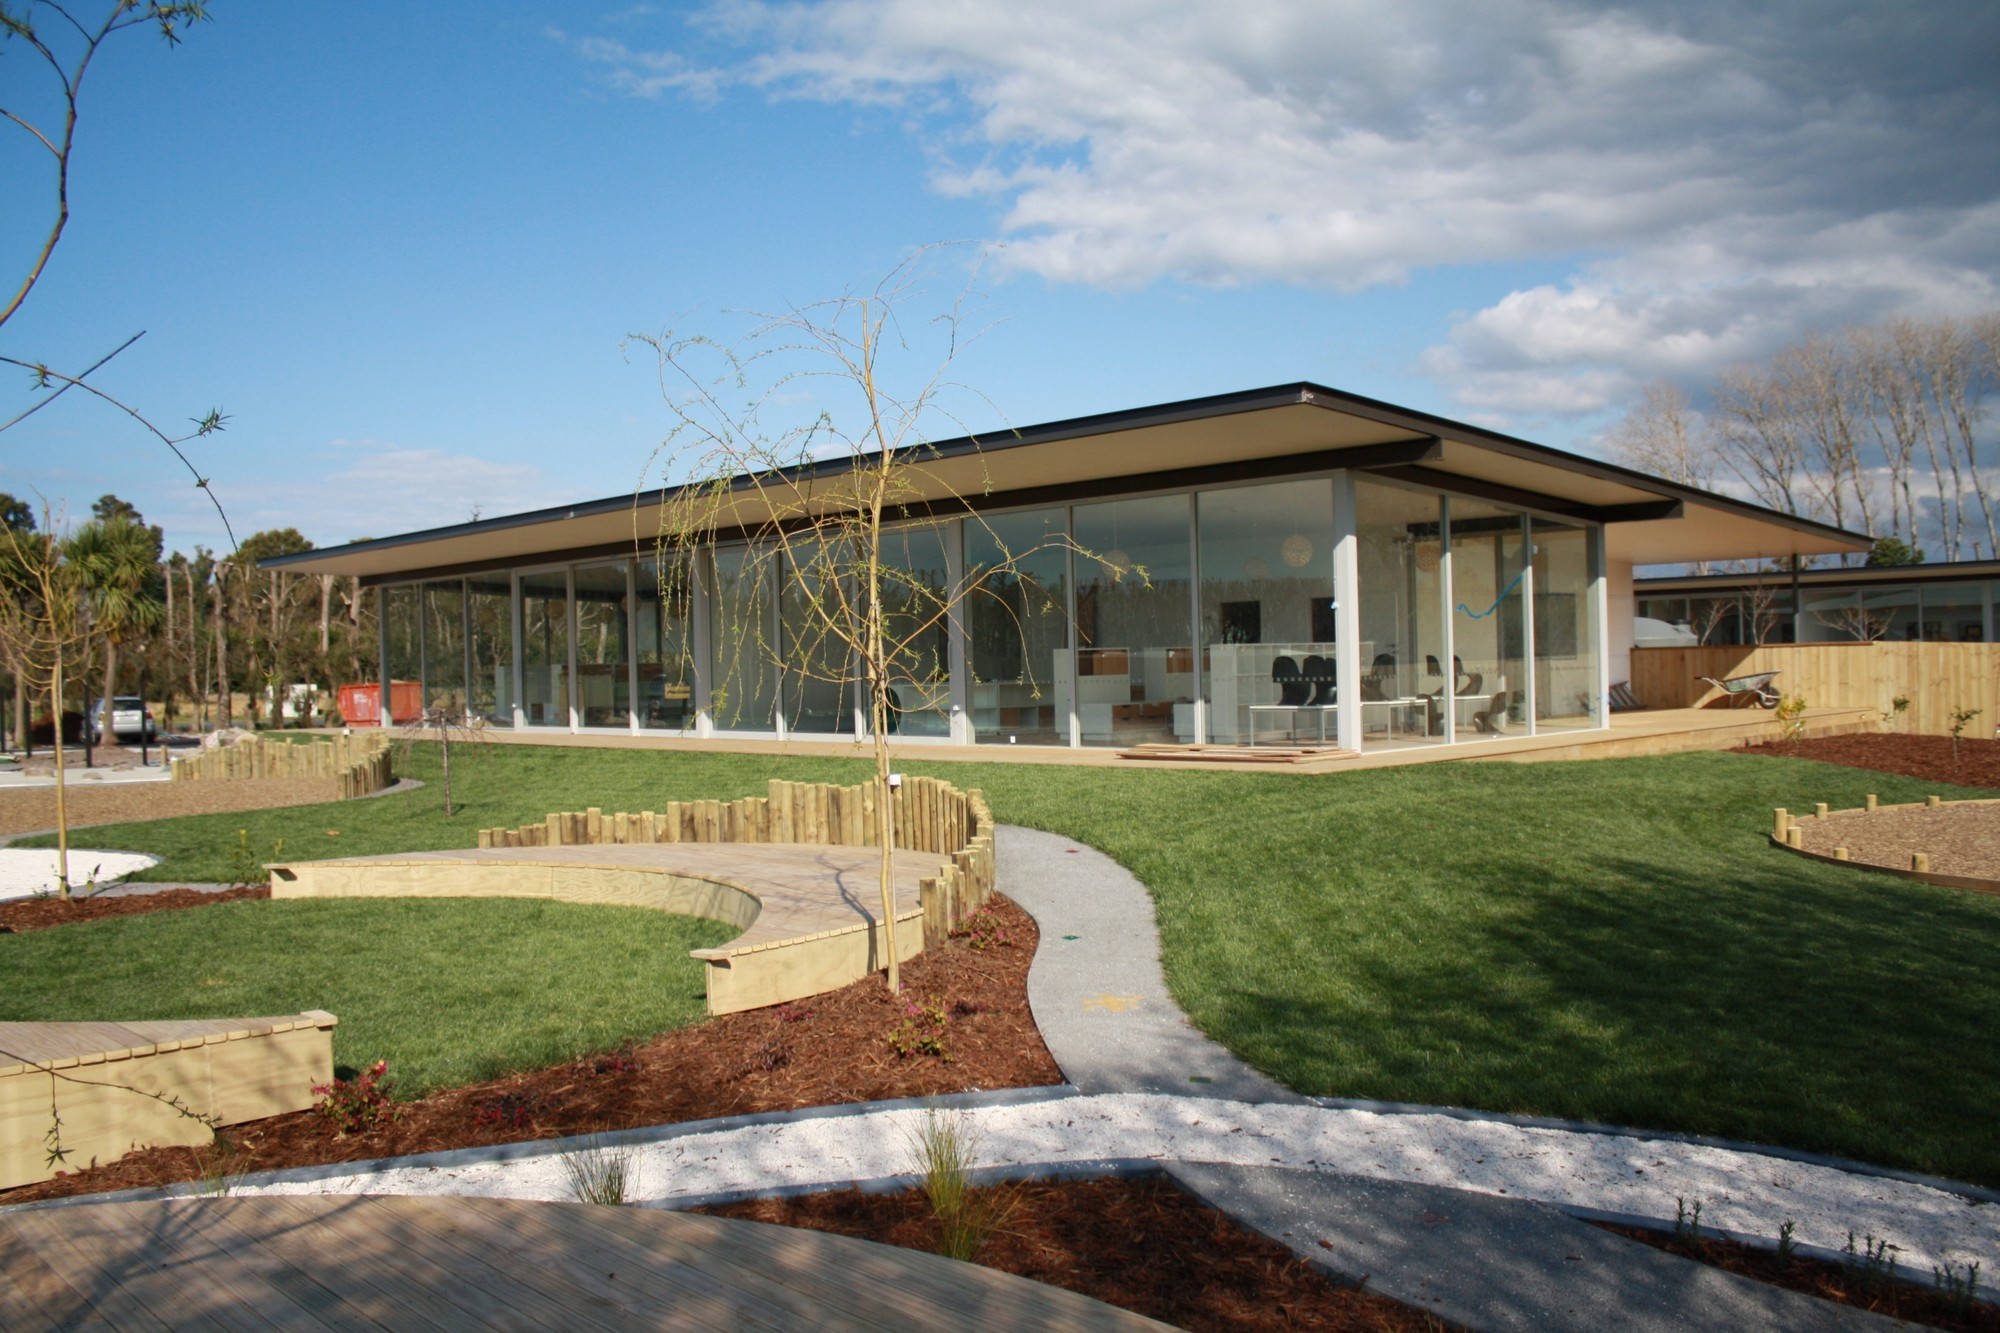 New Shoots Childrens Centre / Collingridge and Smith Architects, Courtesy of Collingridge and Smith Architects